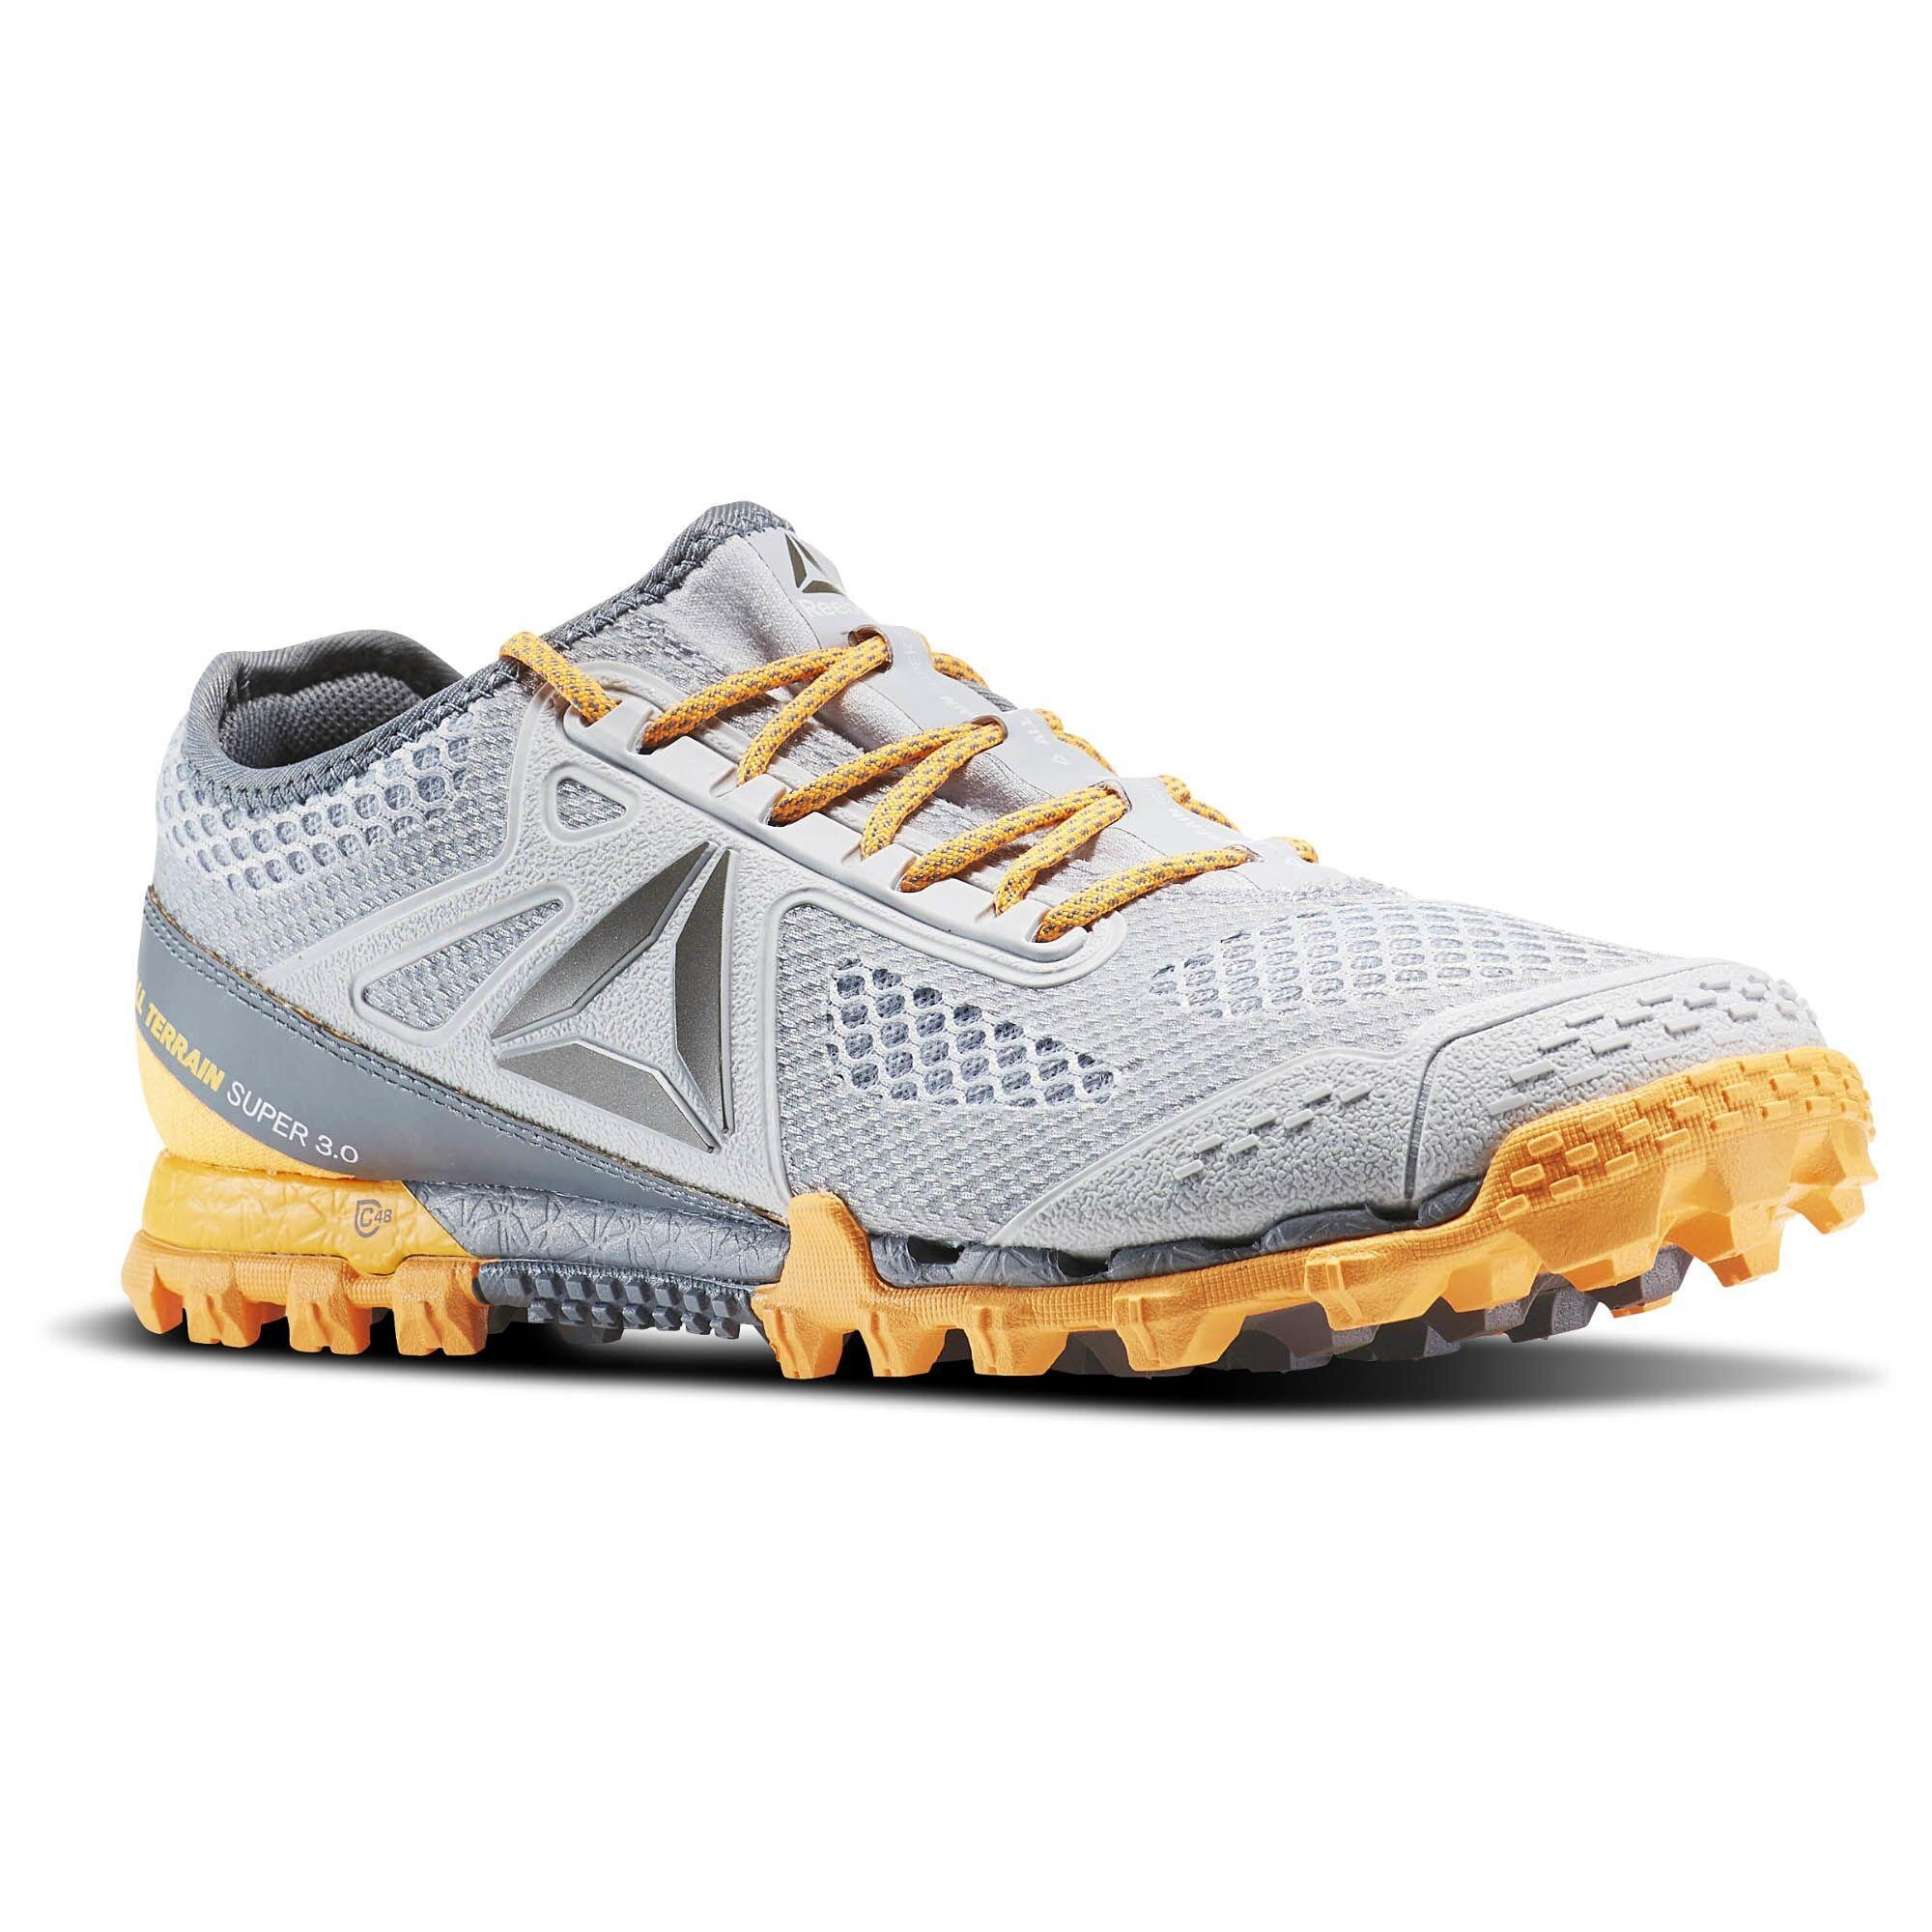 Giày thể thao nam Reebok Shoes Low ALL TERRAIN SUPER 3.0 BD4635